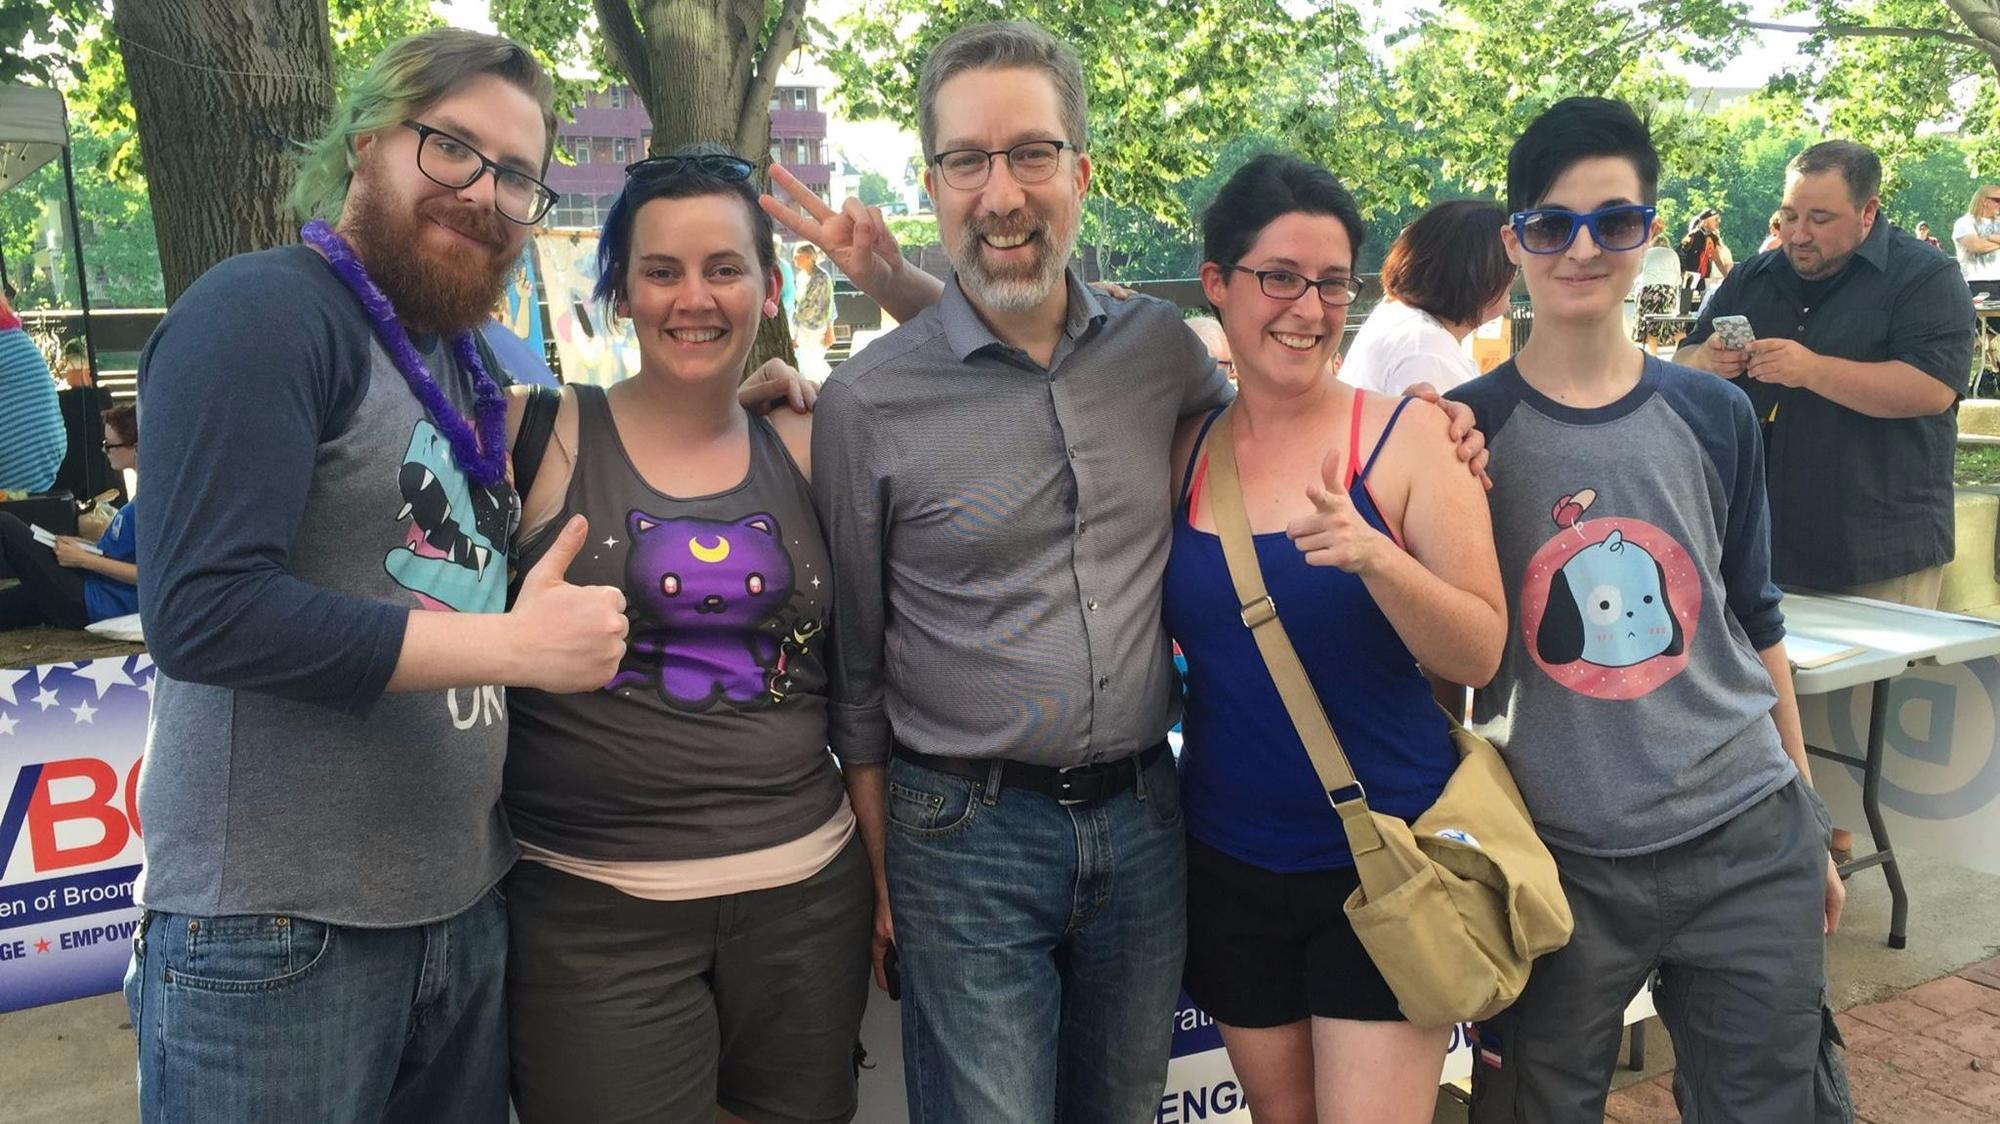 Madden with would-be constituents at Pride Palooza in Binghamton, N.Y. (Laura Lee Intscher)